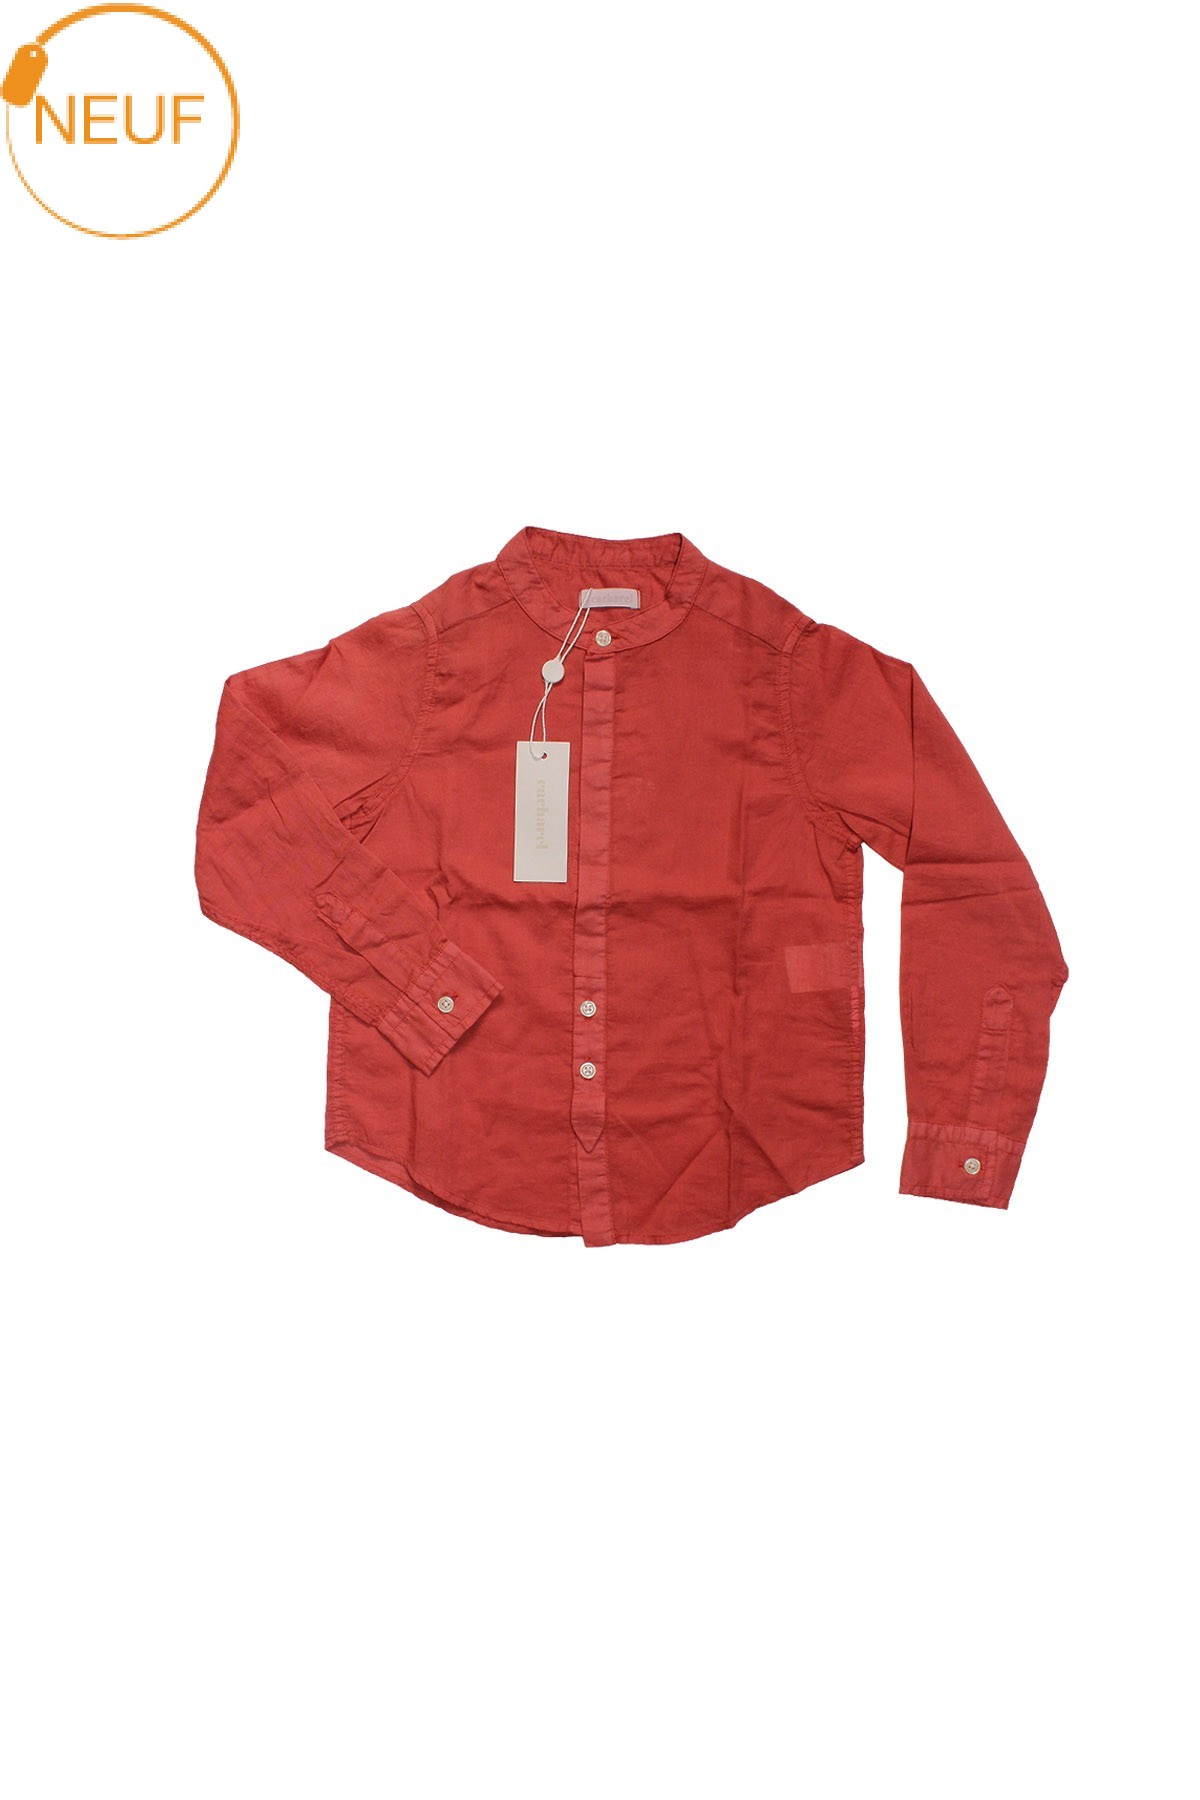 7a3f6fe53eaa8 Chemise Fille 6 ans Cacharel Chemise Fille 6 ans Cacharel